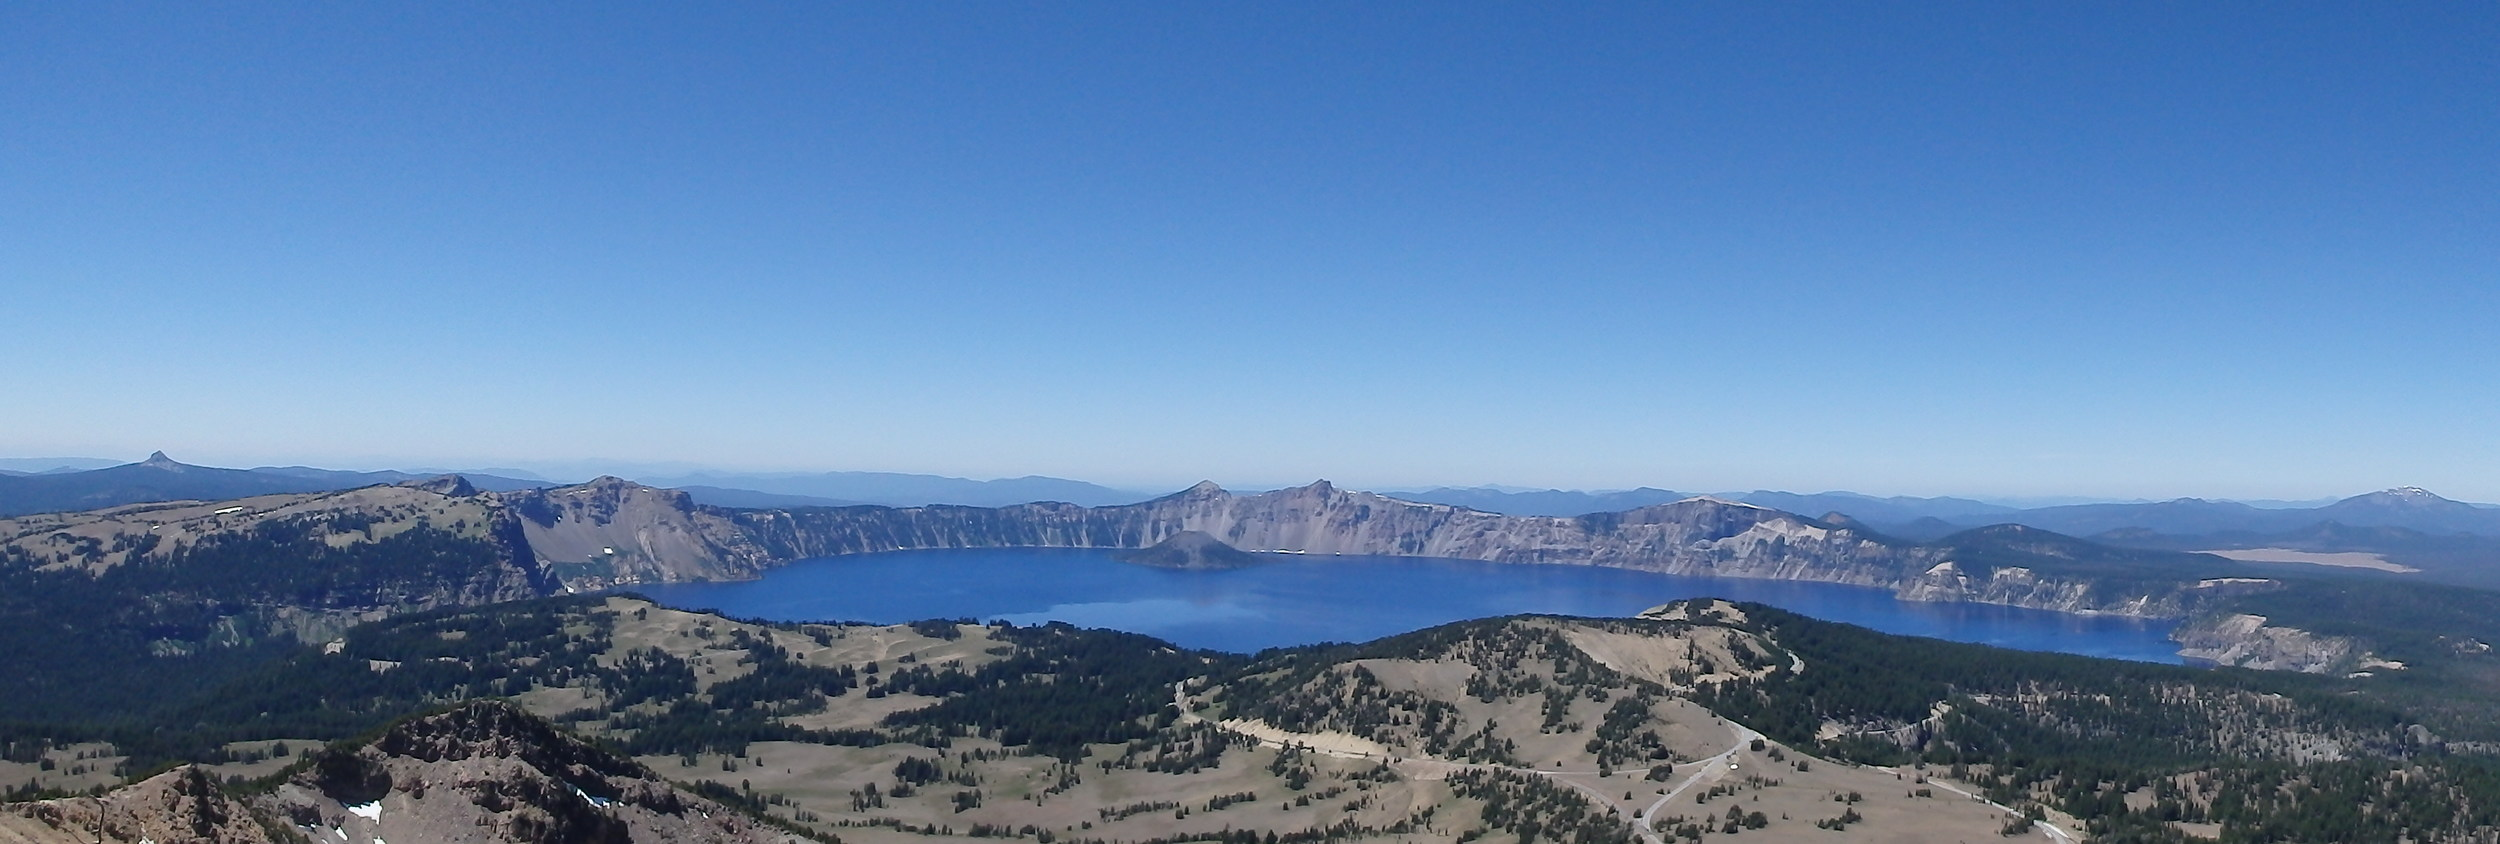 Crater Lake from the top of Mount Scott